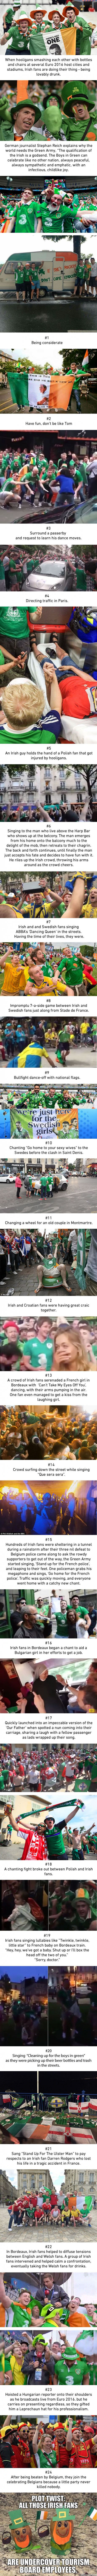 24 Times Irish Football Fans Being Absolutely Adorable At UEFA Euro 2016